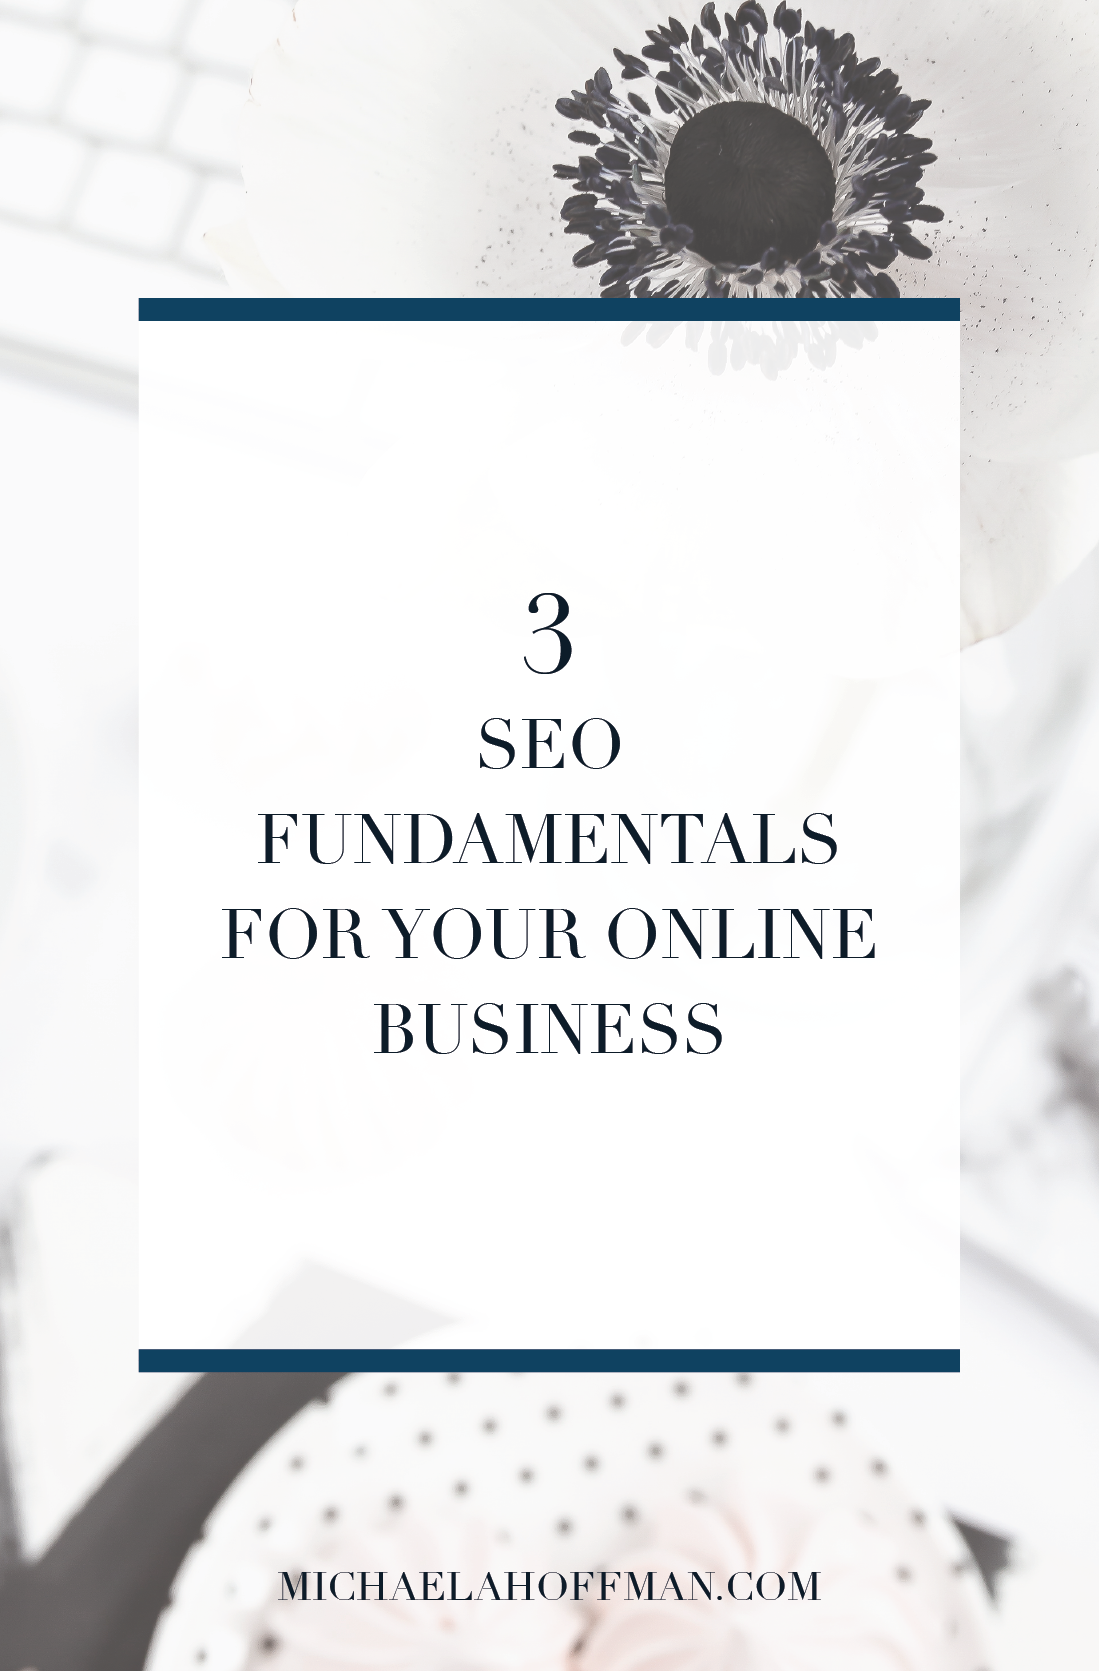 SEO for your business is important for growing your presence online. But where do you start, what do you need to know...here are the 3 fundamentals of SEO you need to understand to get started growing your online business.